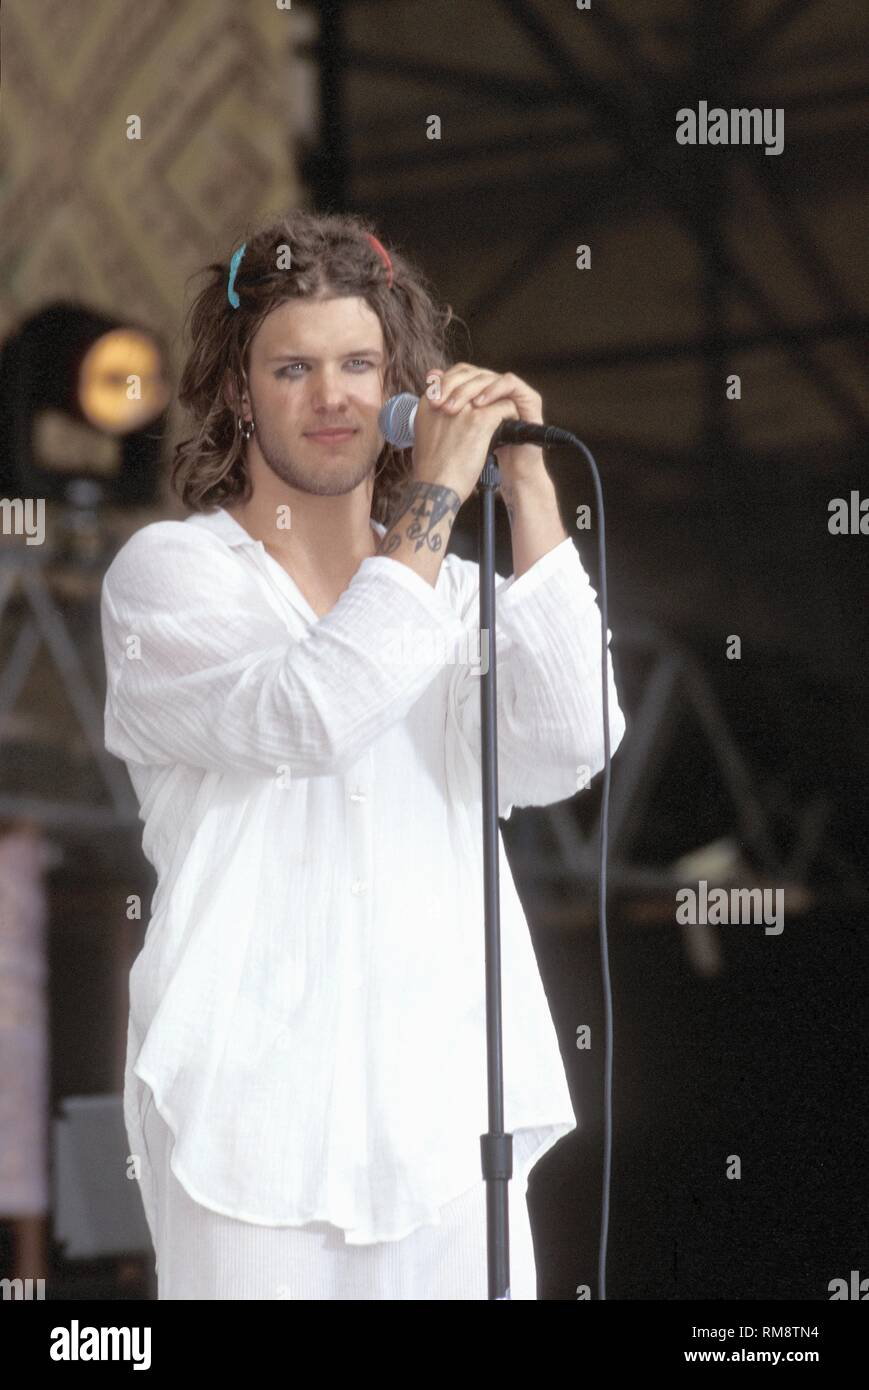 Blind Melon singer Shannon Hoon is shown performing on stage